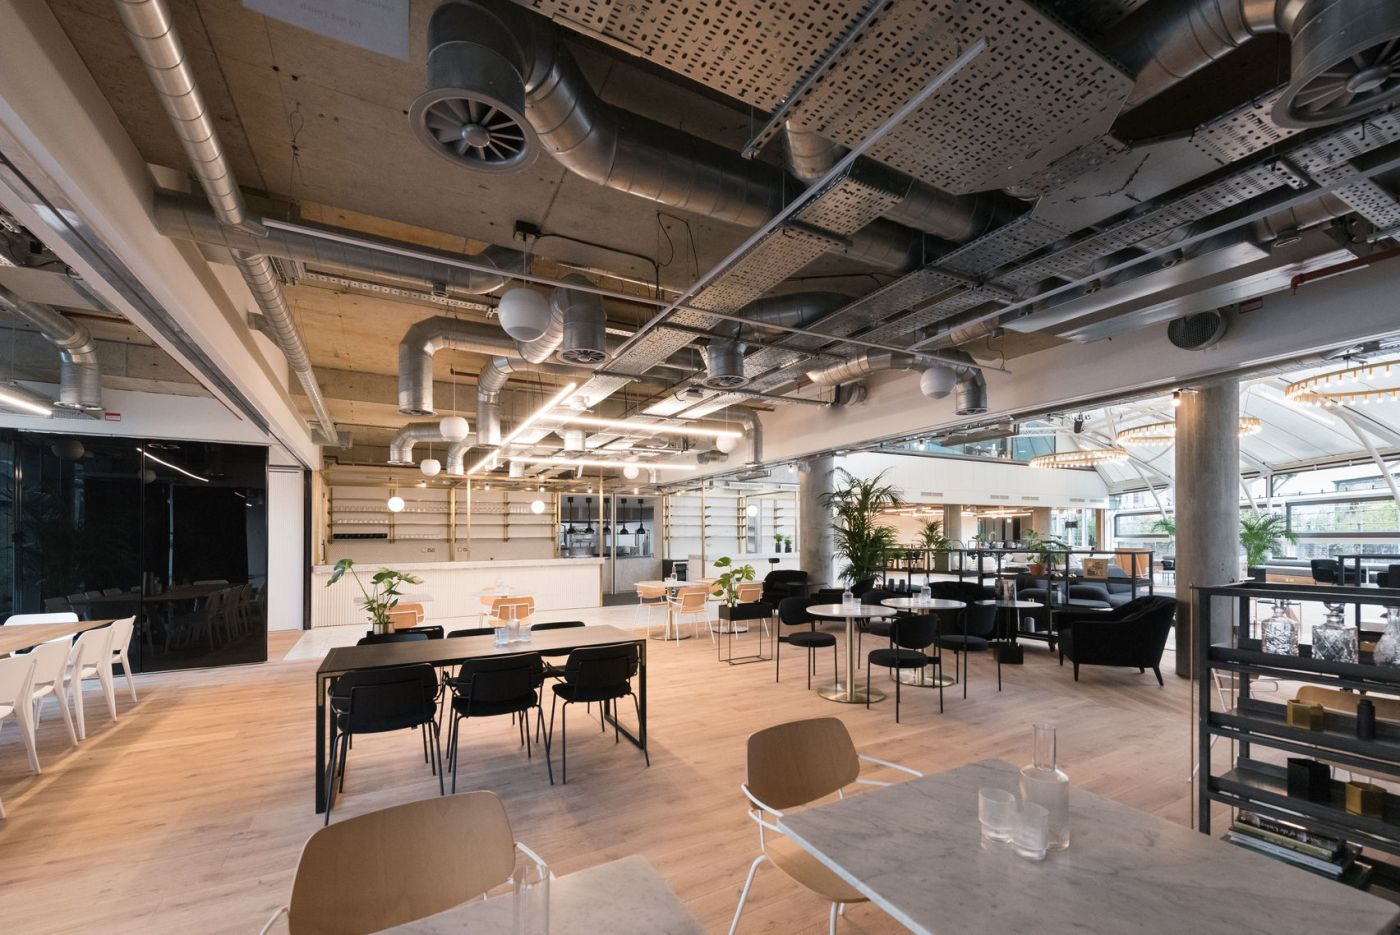 Large event space in London with a range of seating and exposed silver piping